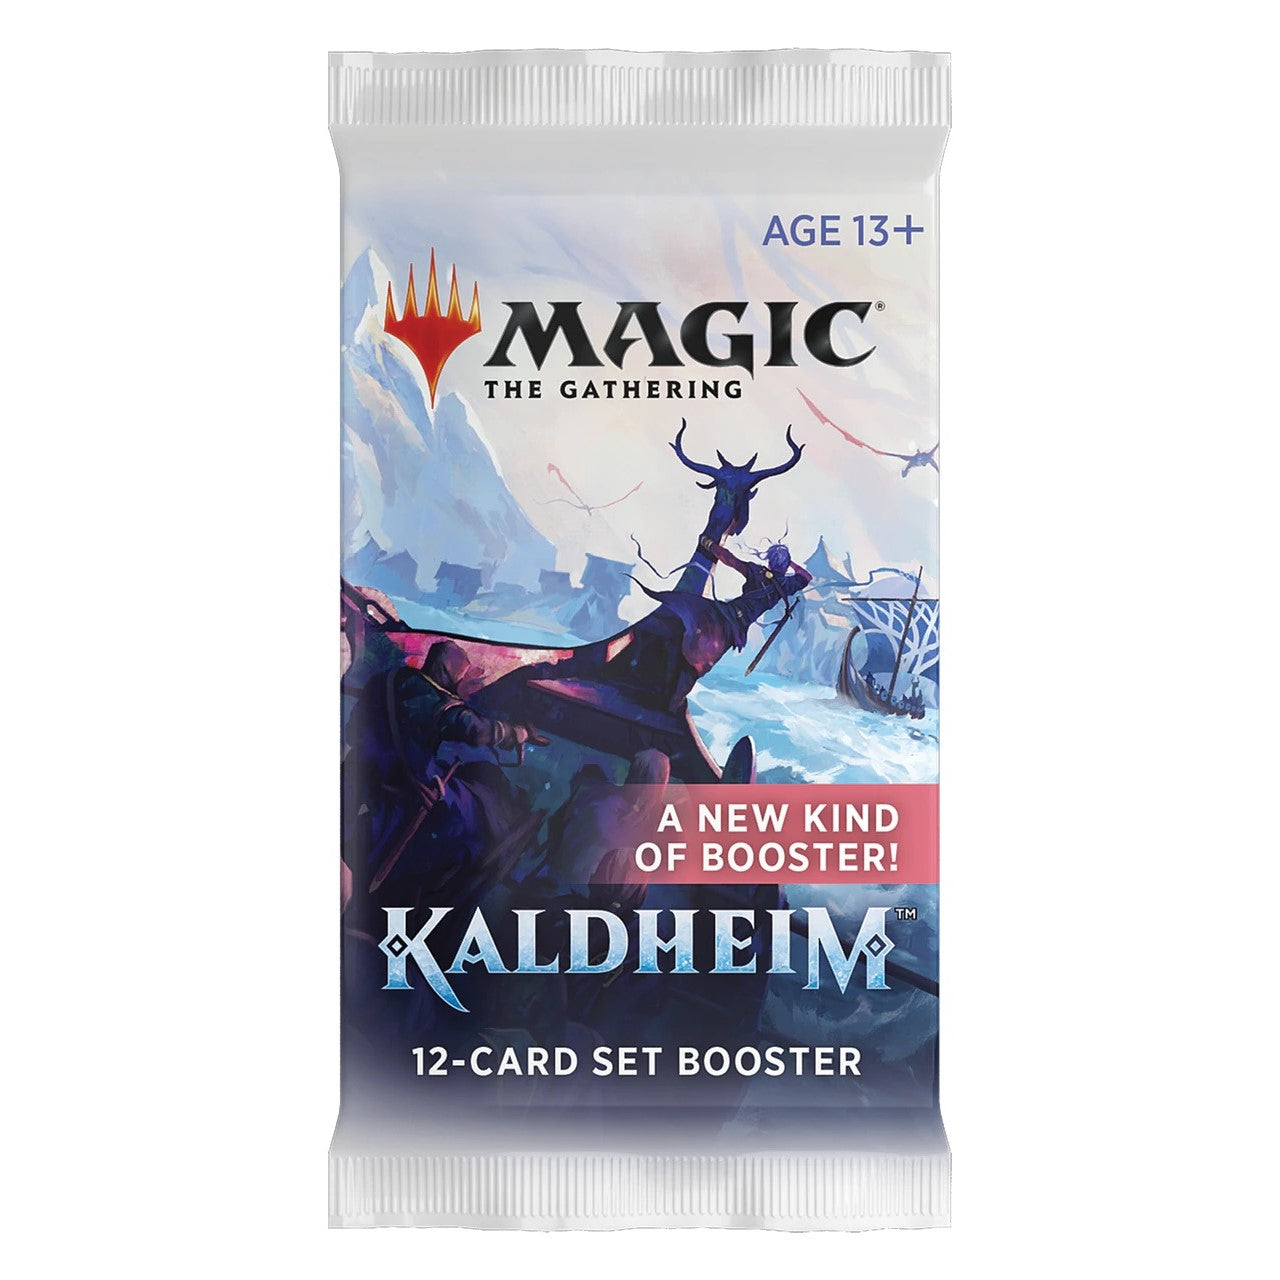 Kaldheim Booster Product